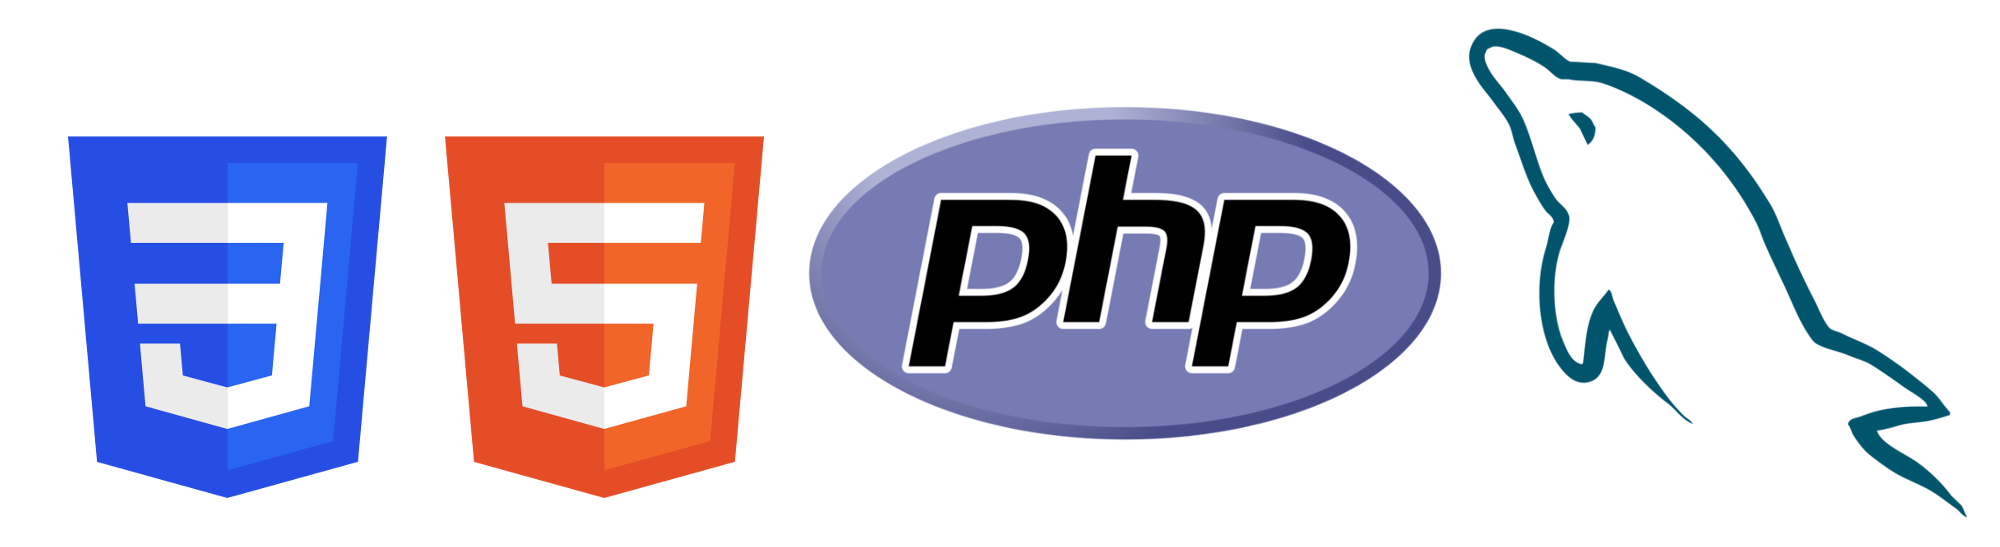 how to call html info from a php file